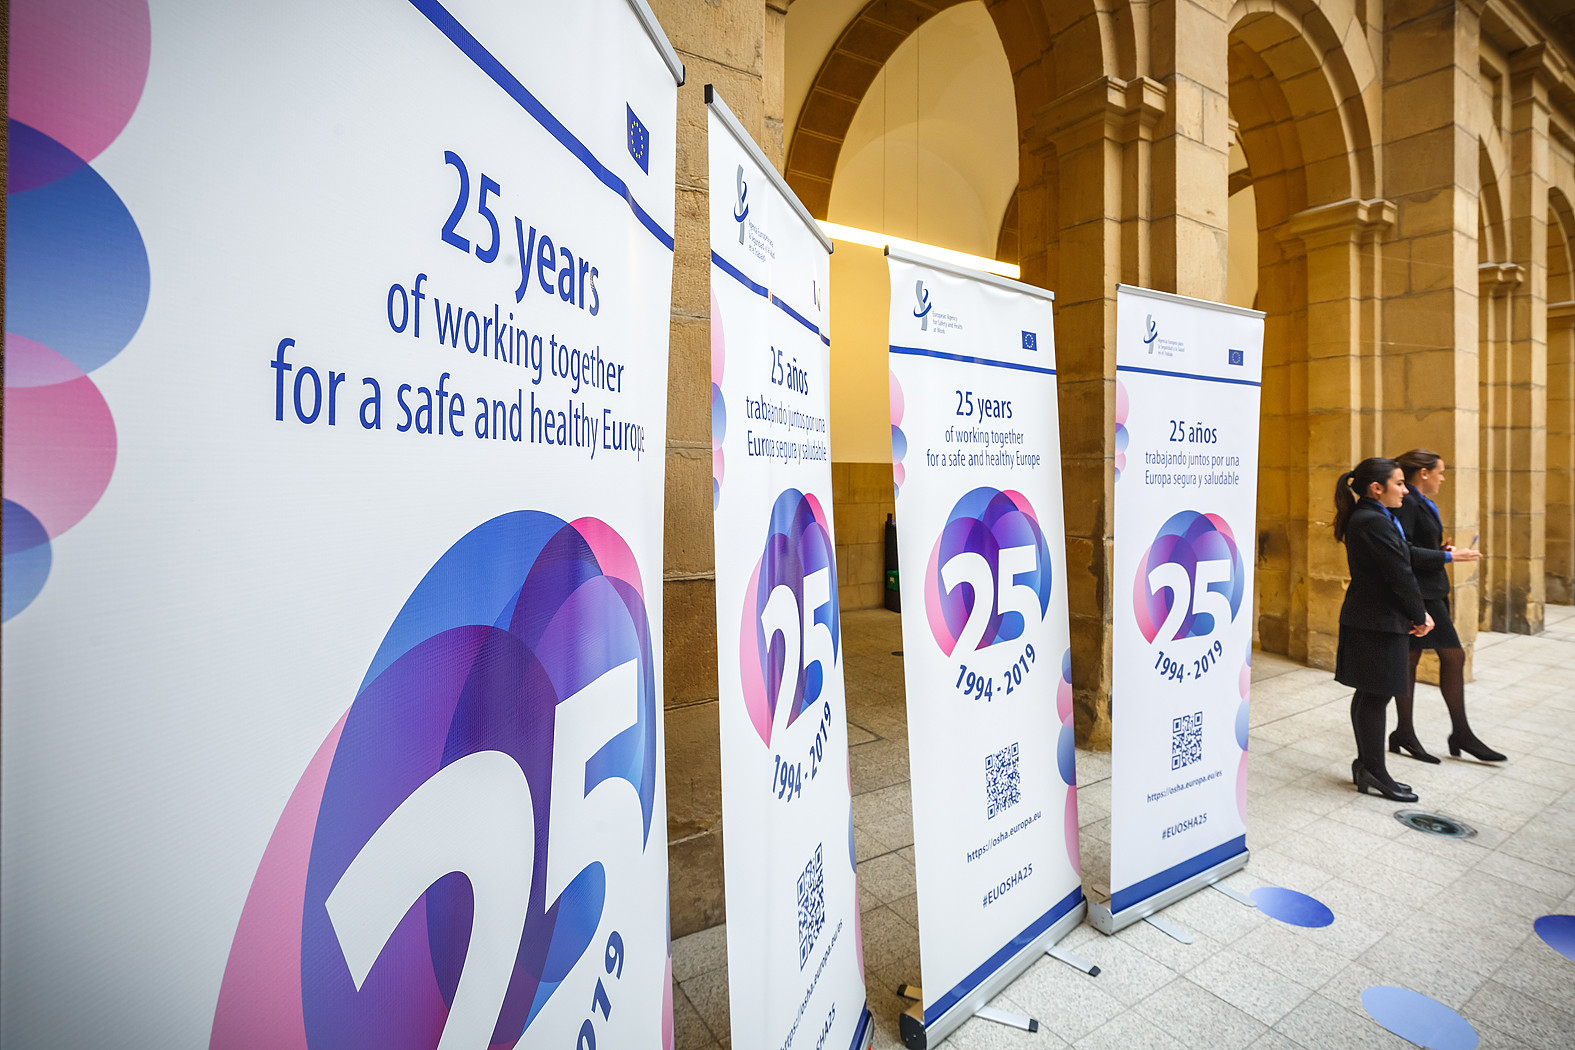 05/06/2019 - 18:48 - EU-OSHA and its extensive network of partners celebrated in Bilbao on 5 June their joint efforts over the past 25 years for safer and healthier European workplaces.  photo: © EU-OSHA / Fernando Aramburu Garrido